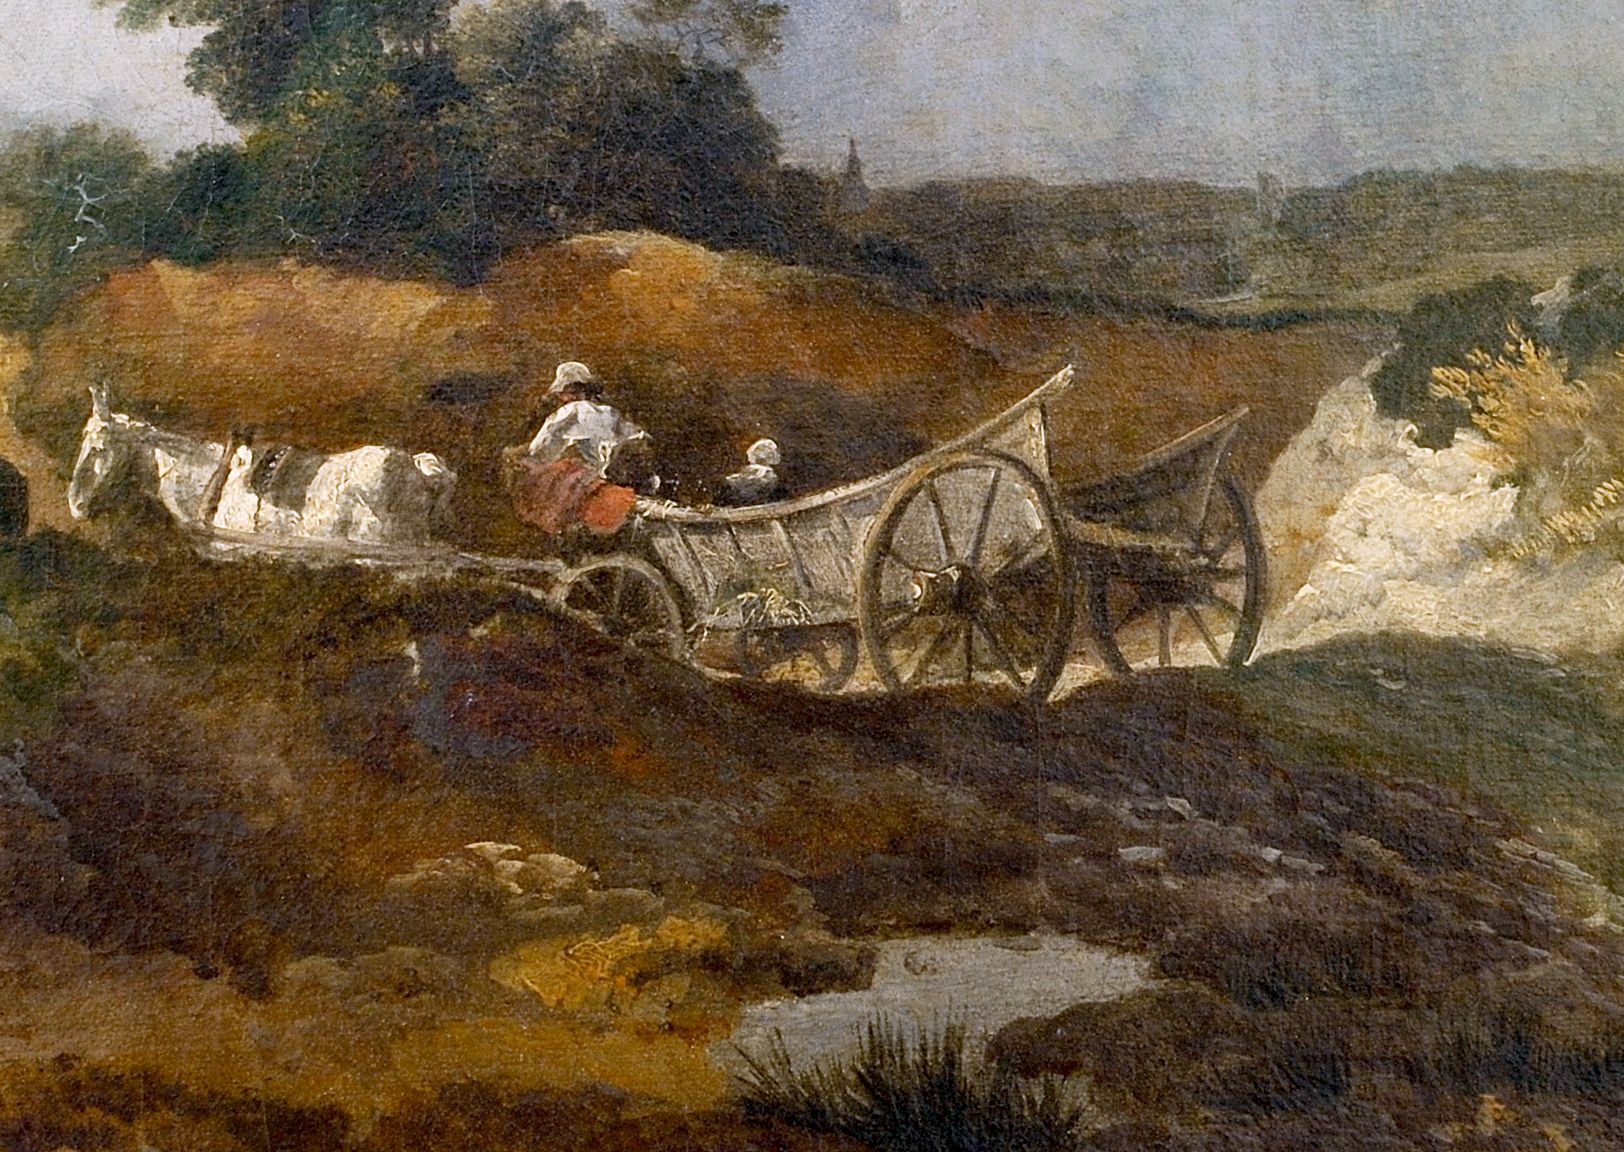 Thomas Gainsborough (1727-88), Detail from Open Landscape with Country Wagon on an Undulating Track, 1746-7, oil on canvas, 48.3 x 60.3 cm, Gainsborough's House, Sudbury, Inventory Number L0001